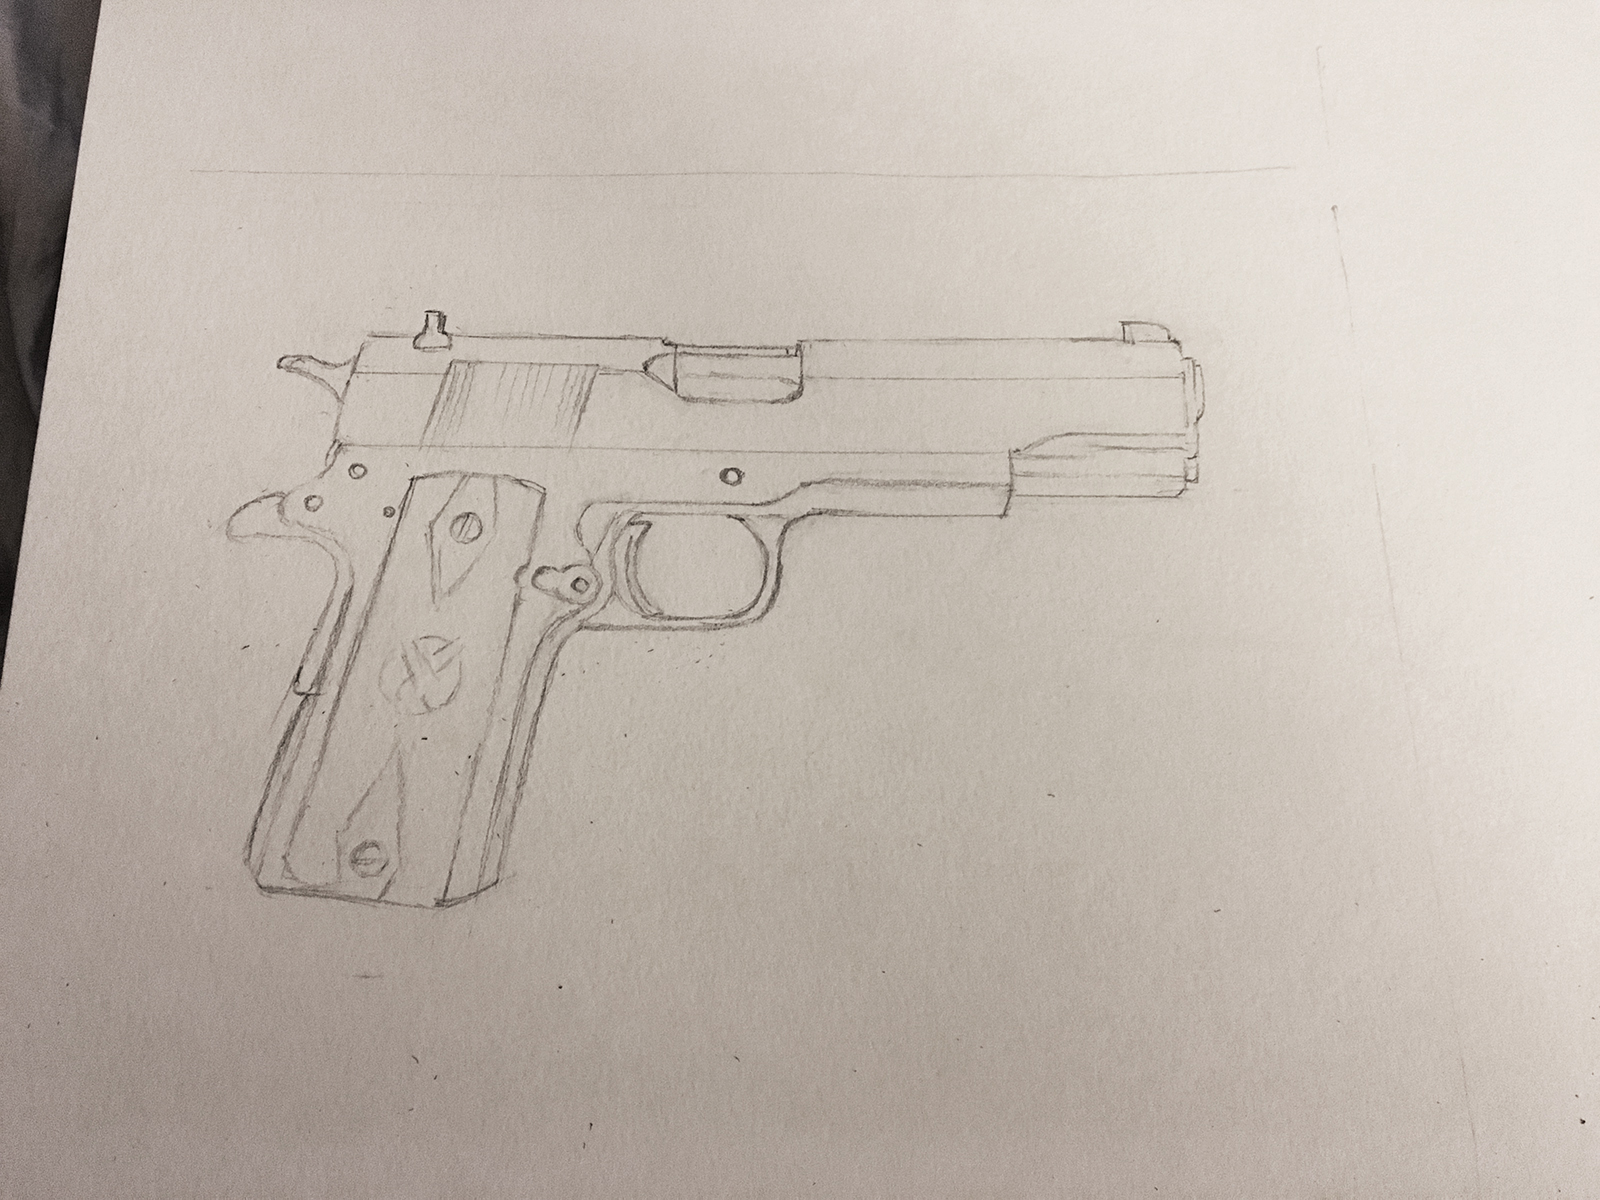 springfield 1911 drawing by jordan fretz